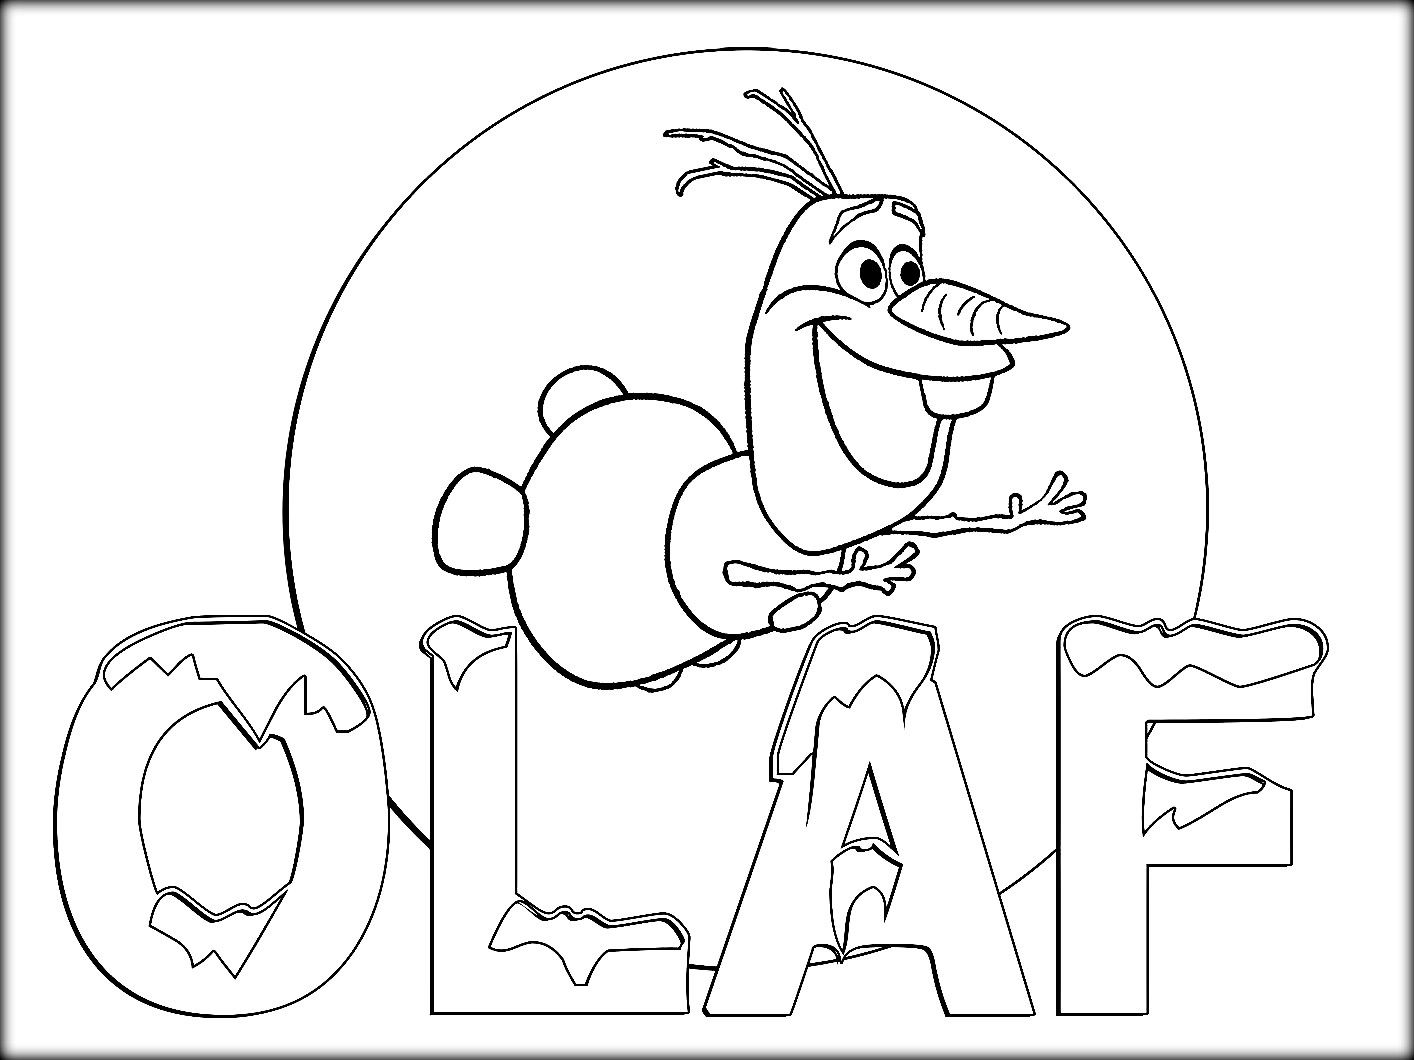 Cute-Olaf-Coloring-Pages-For-Kids.jpg (1414×1060)